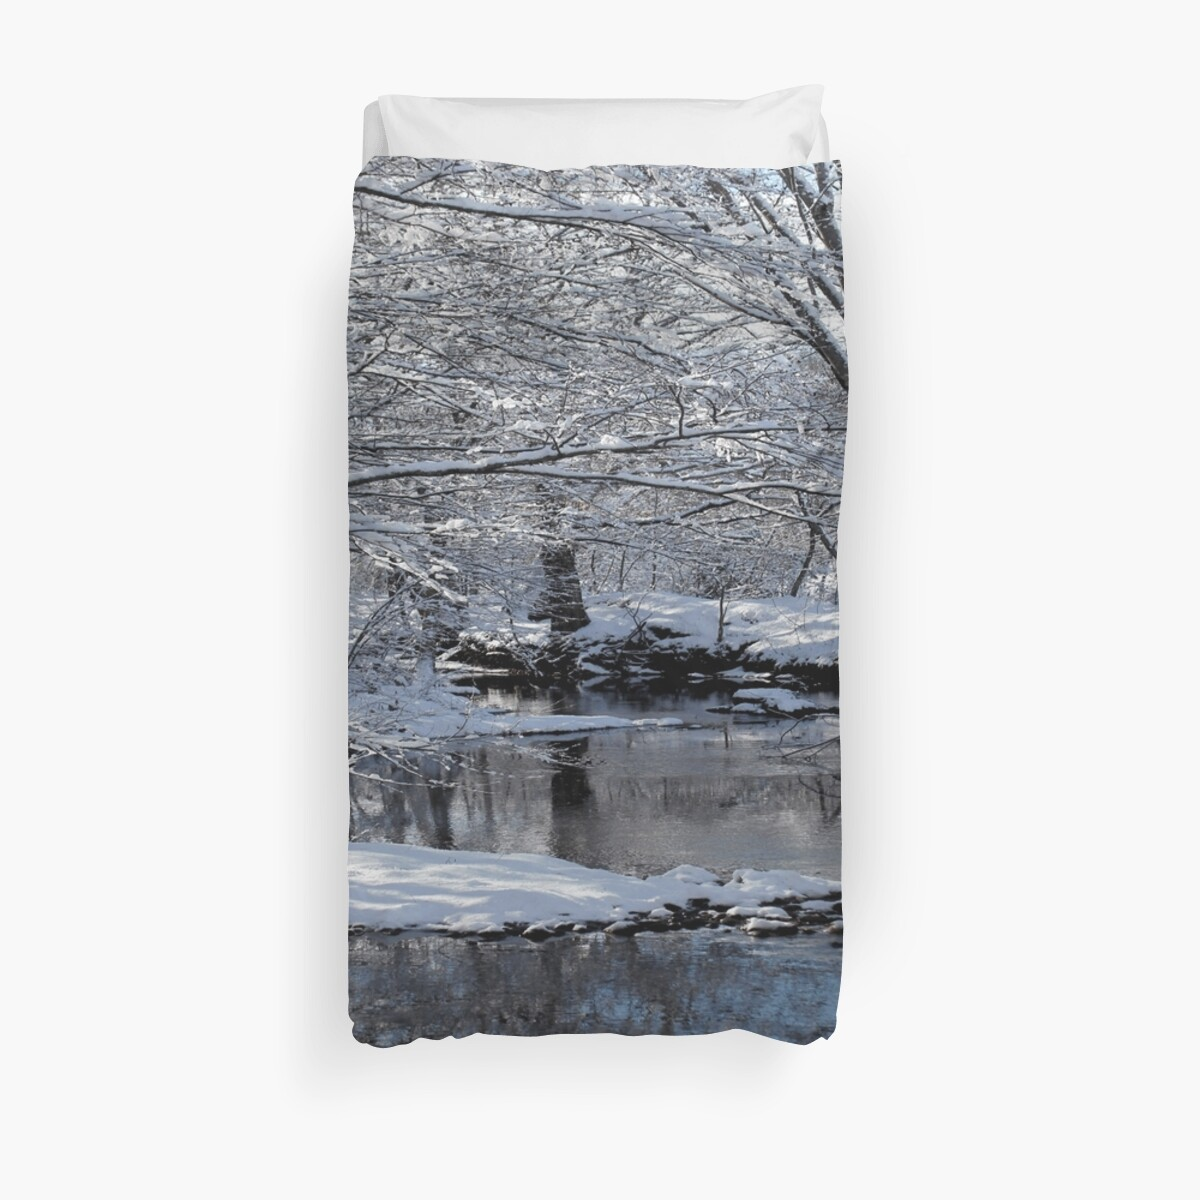 Snow Fallen Saco River - New Hampshire by CapeCodGiftShop